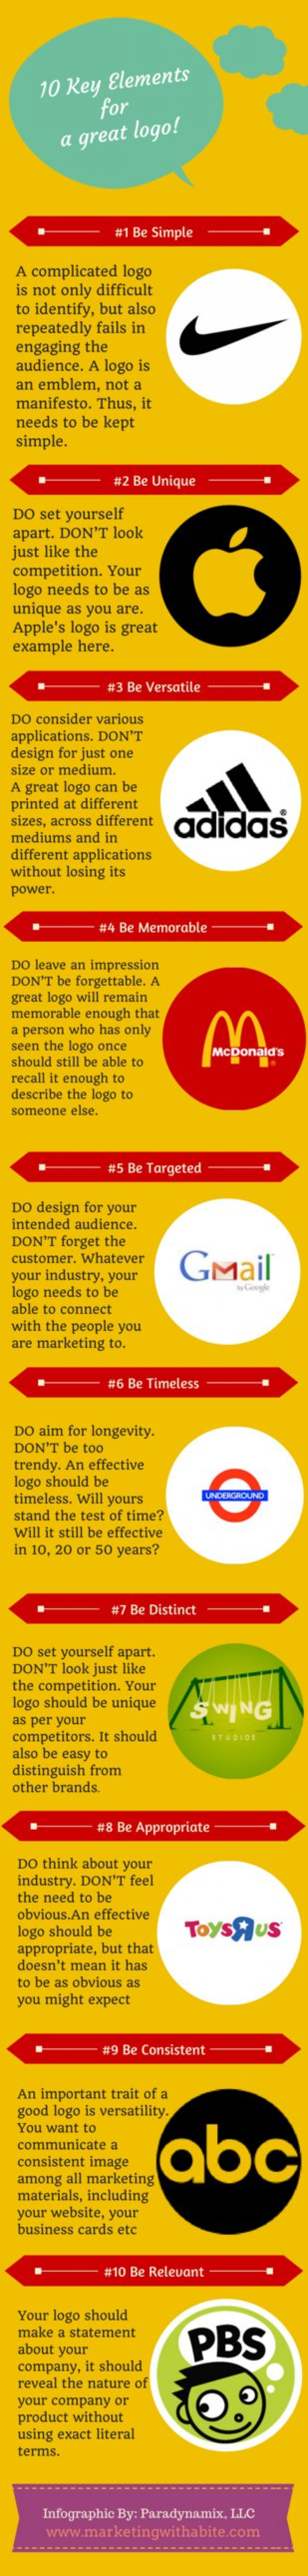 10 Key Elements For a Great Logo Infographic